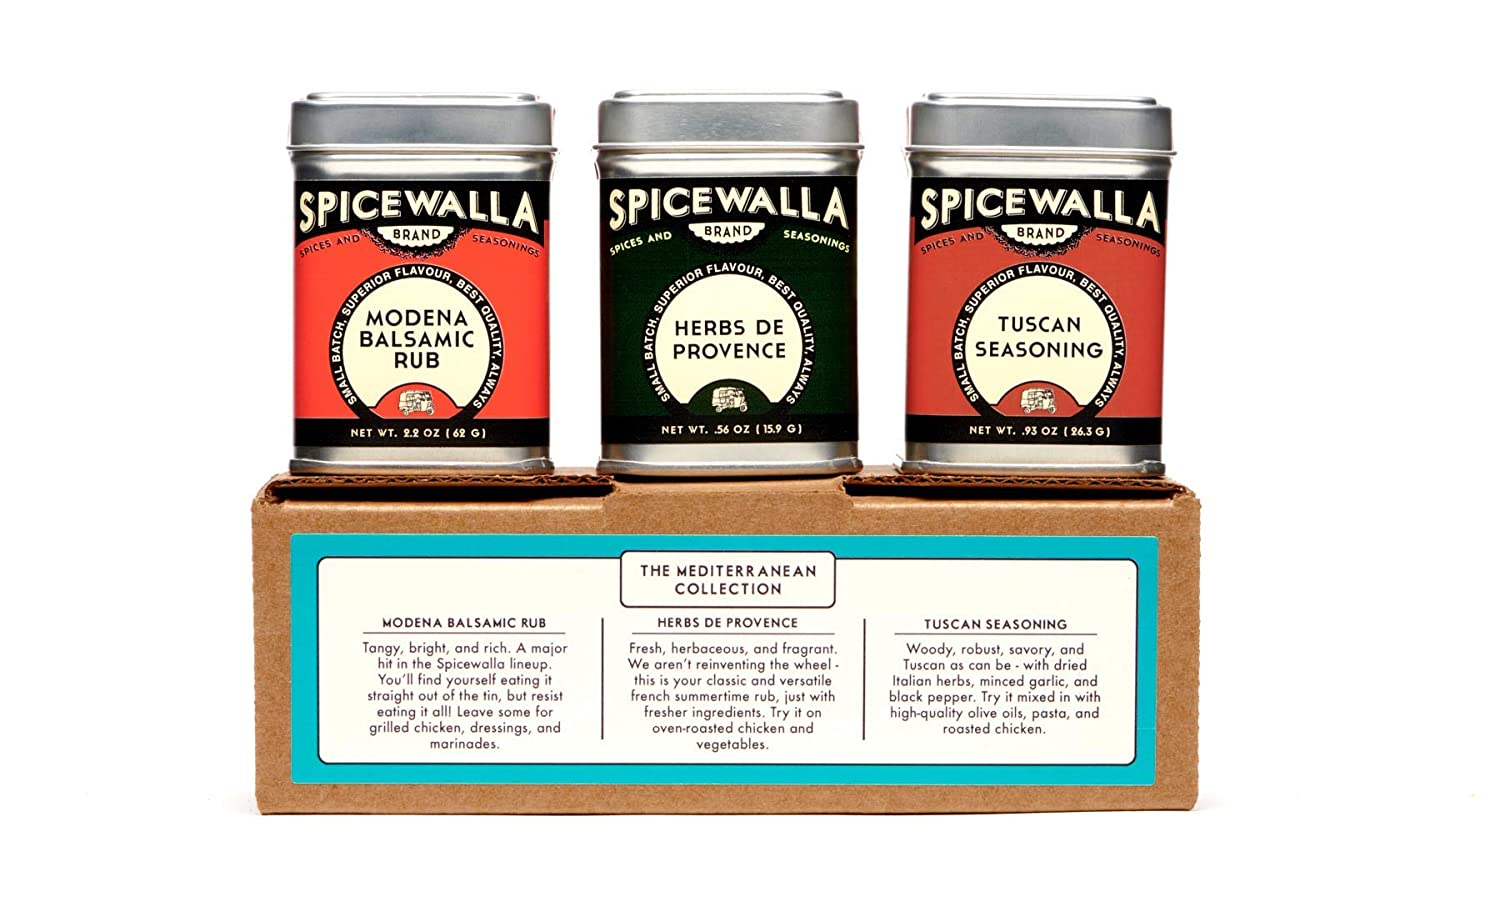 Amazon Com Spicewalla Mediterranean Spices Collection 3 Pack Tuscan Seasoning Herbs De Provence Modena Balsamic Rub Spice Blend Grocery Gourmet Food